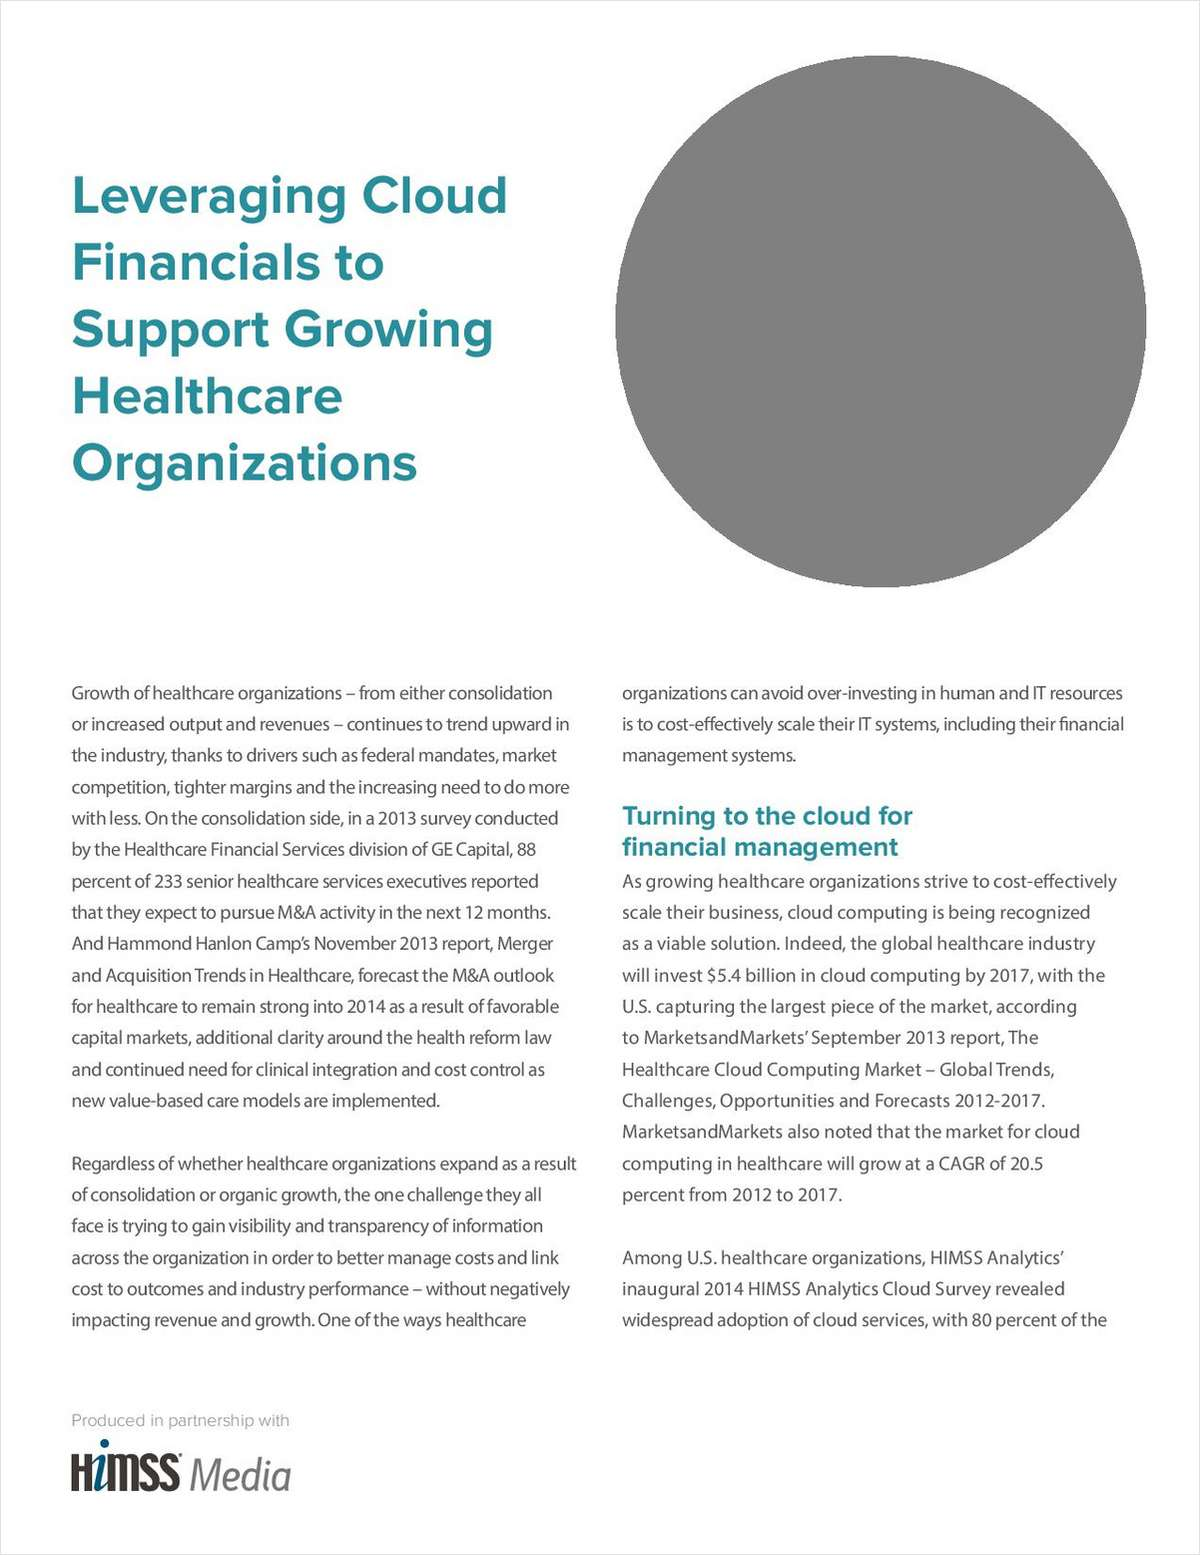 Leveraging Cloud Financials to Support Growing Healthcare Organizations